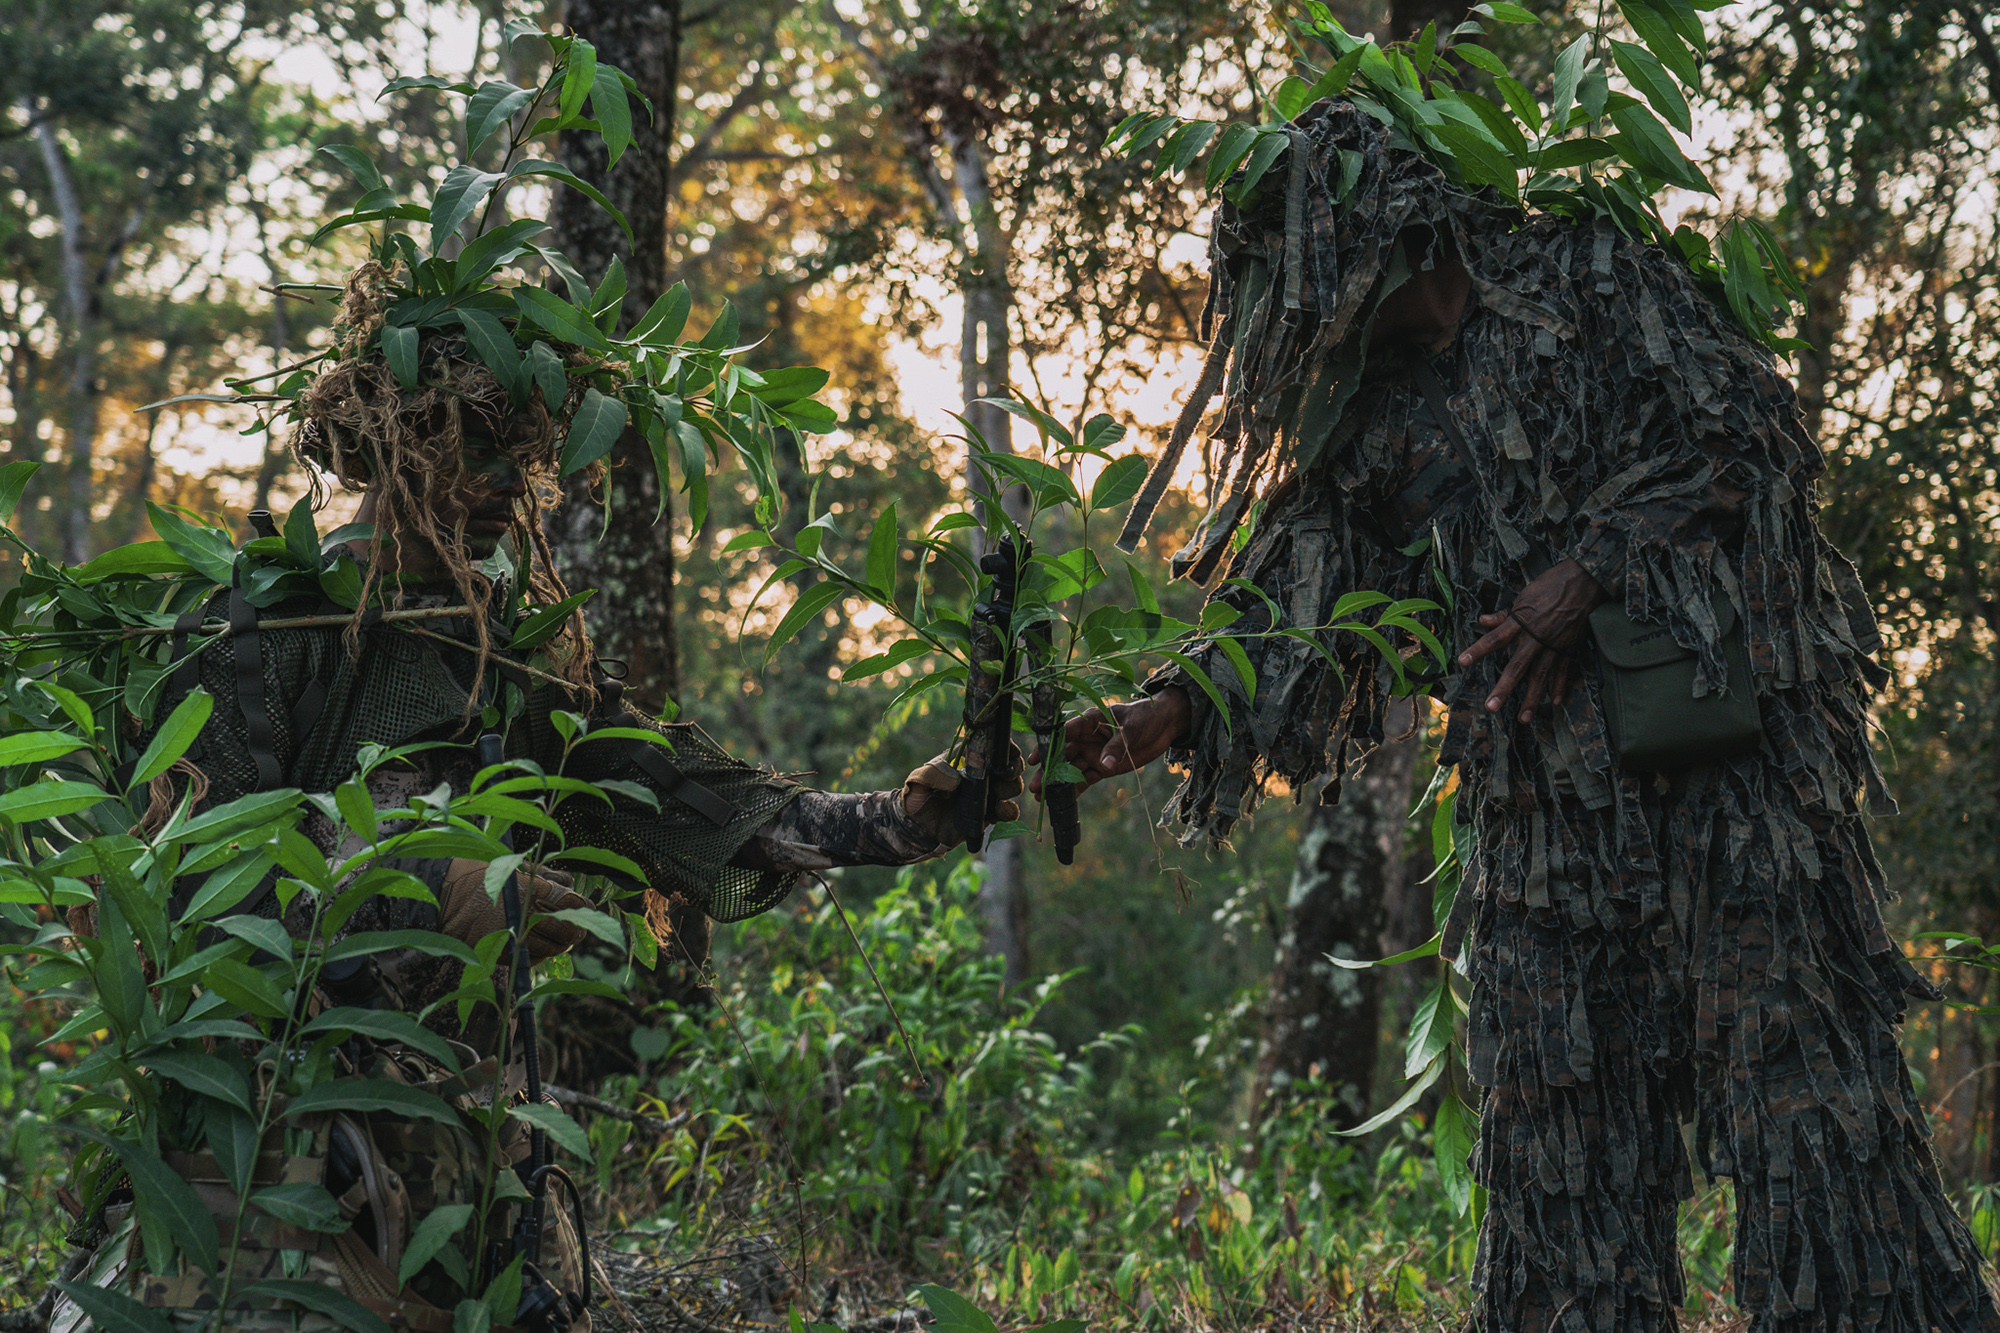 A member of the 7th Special Forces Group (Airborne) prepares a sniping position with Guatemalan Special Forces prior to a training exercise in Guatemala, March 3, 2020. (Spc. Aaron Schaeper/Army)